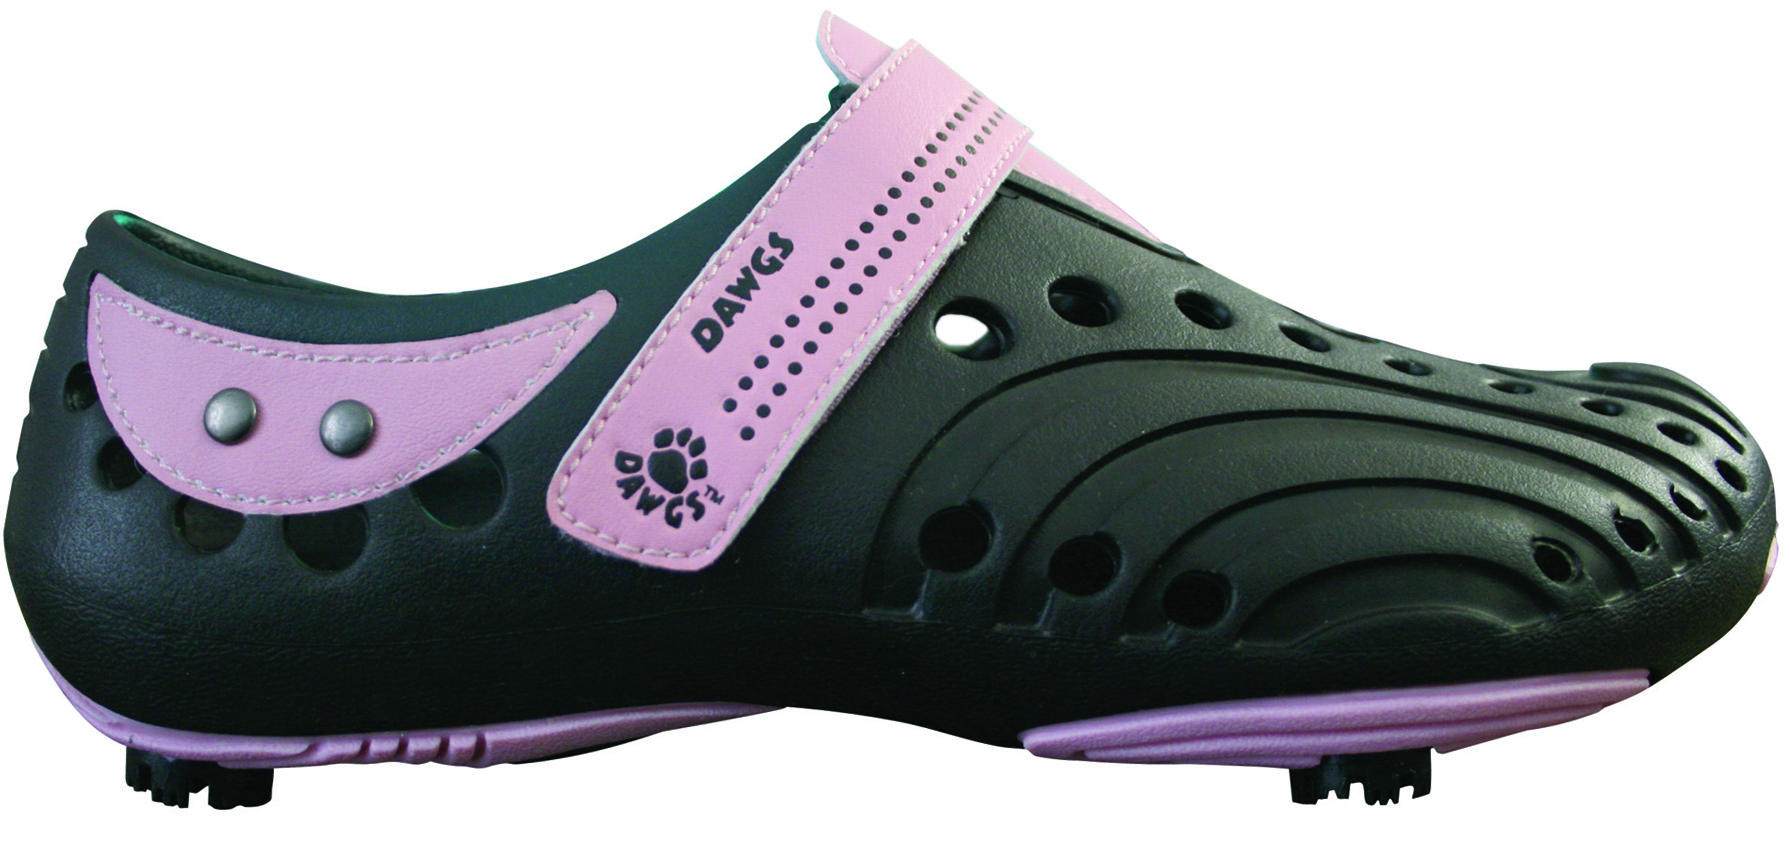 Dawgs Spirit Golf Shoes Review